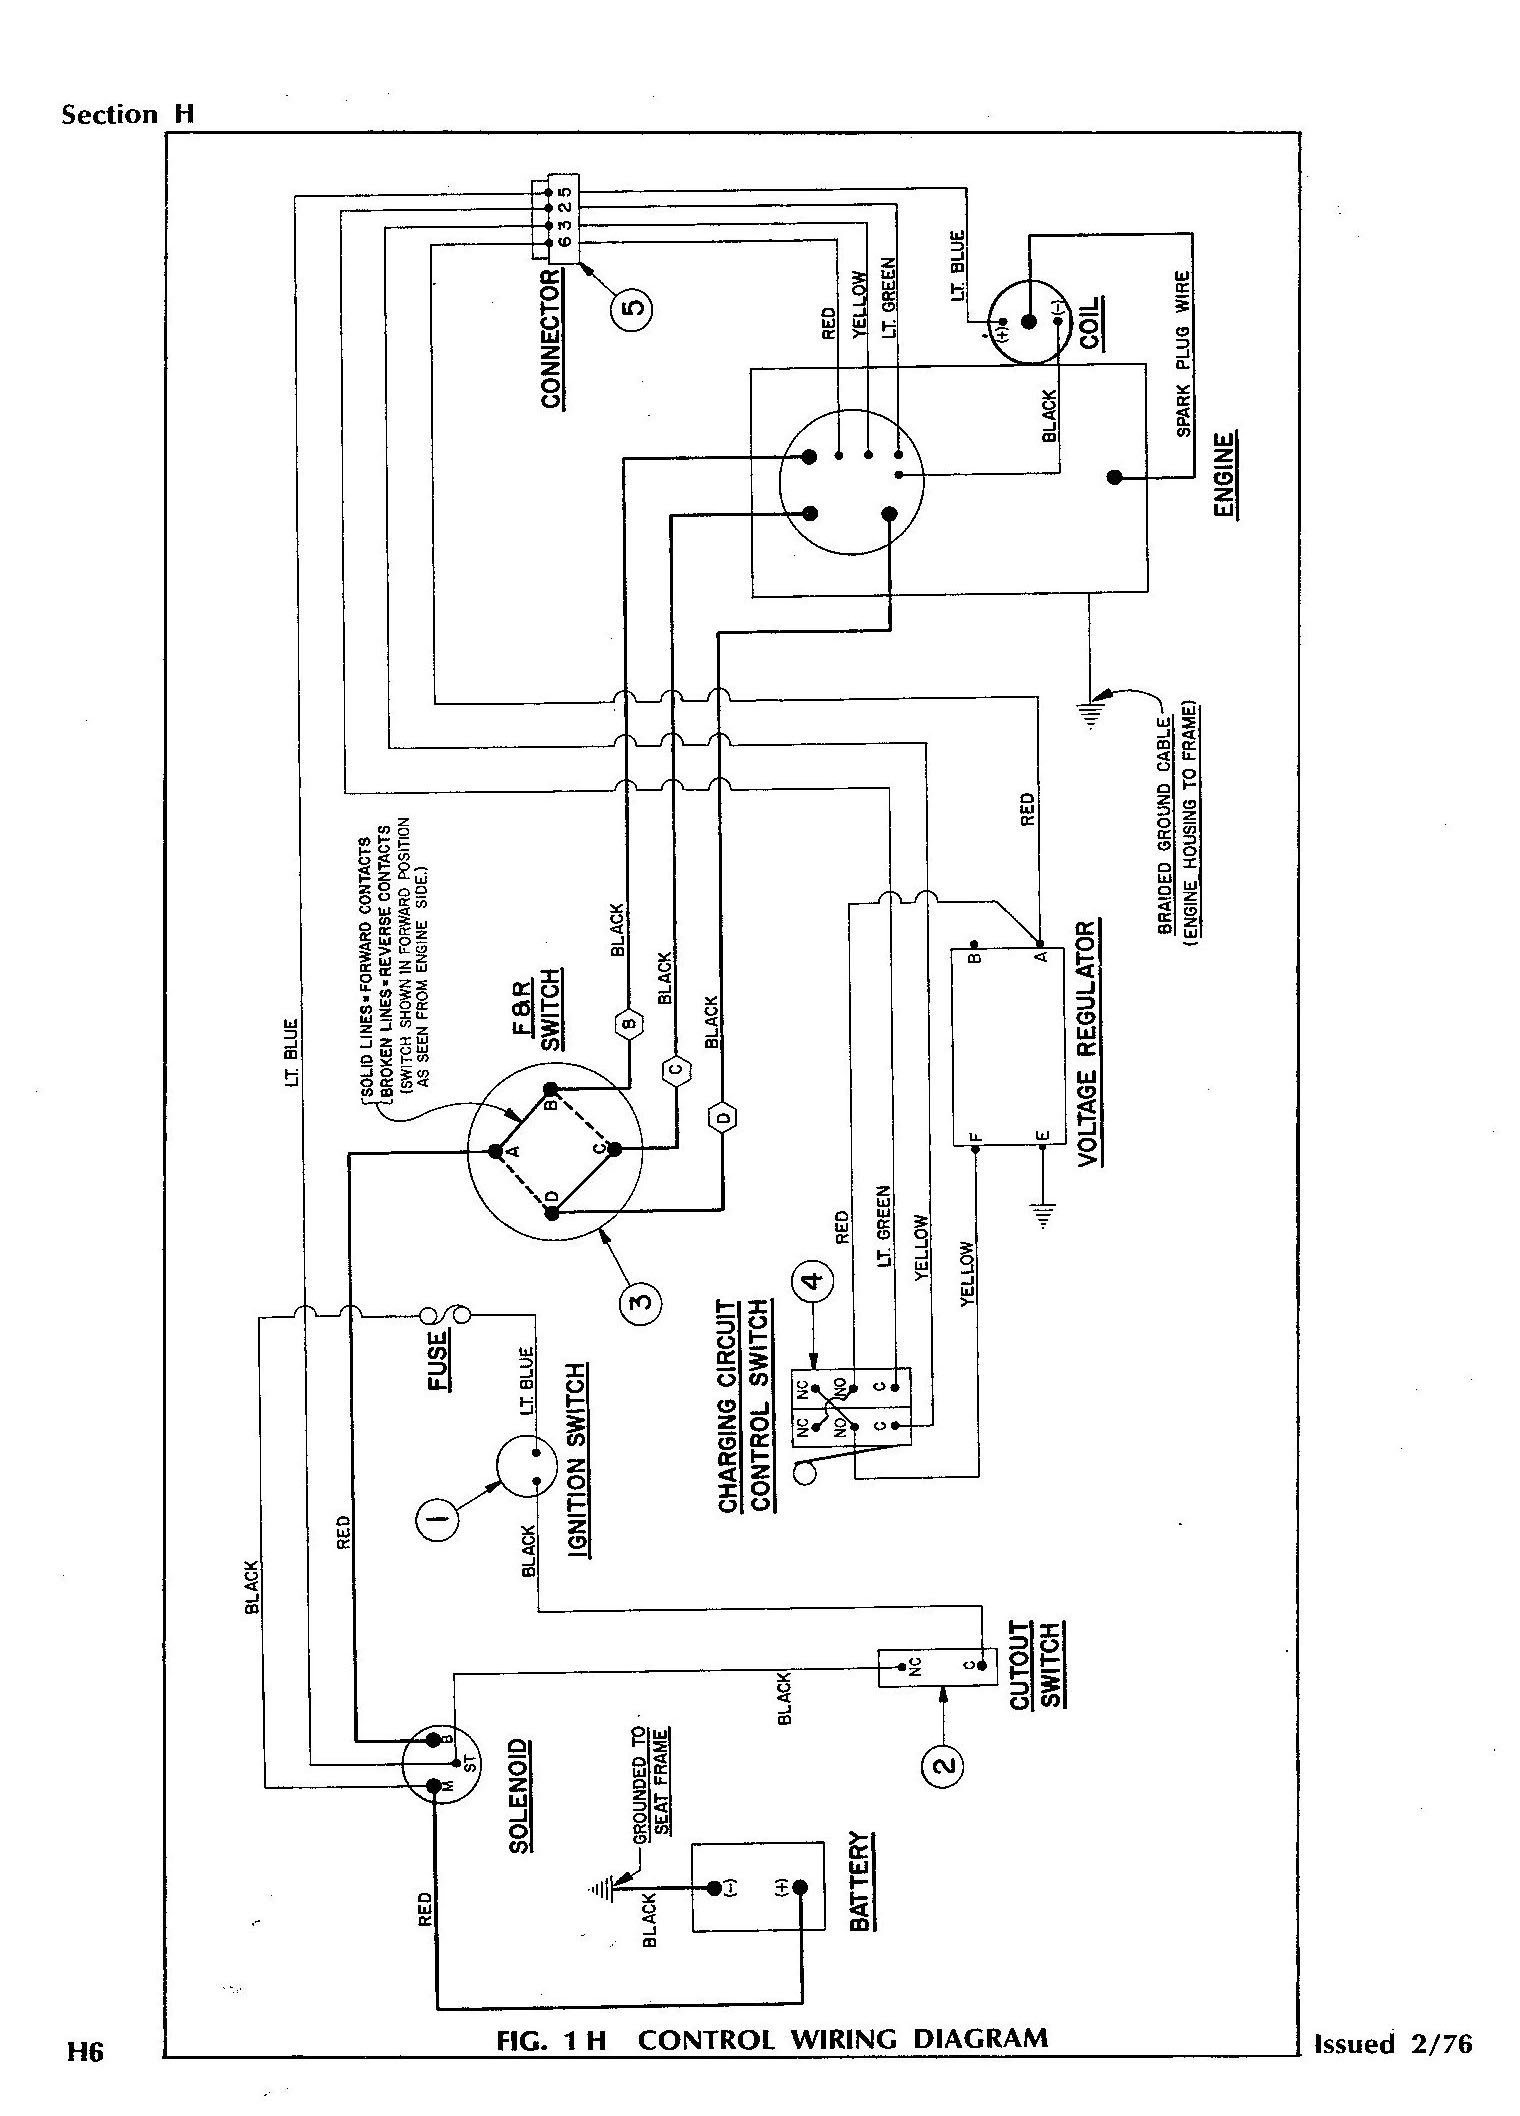 1989 ezgo wiring diagram trusted wiring diagrams u2022 rh sivamuni com